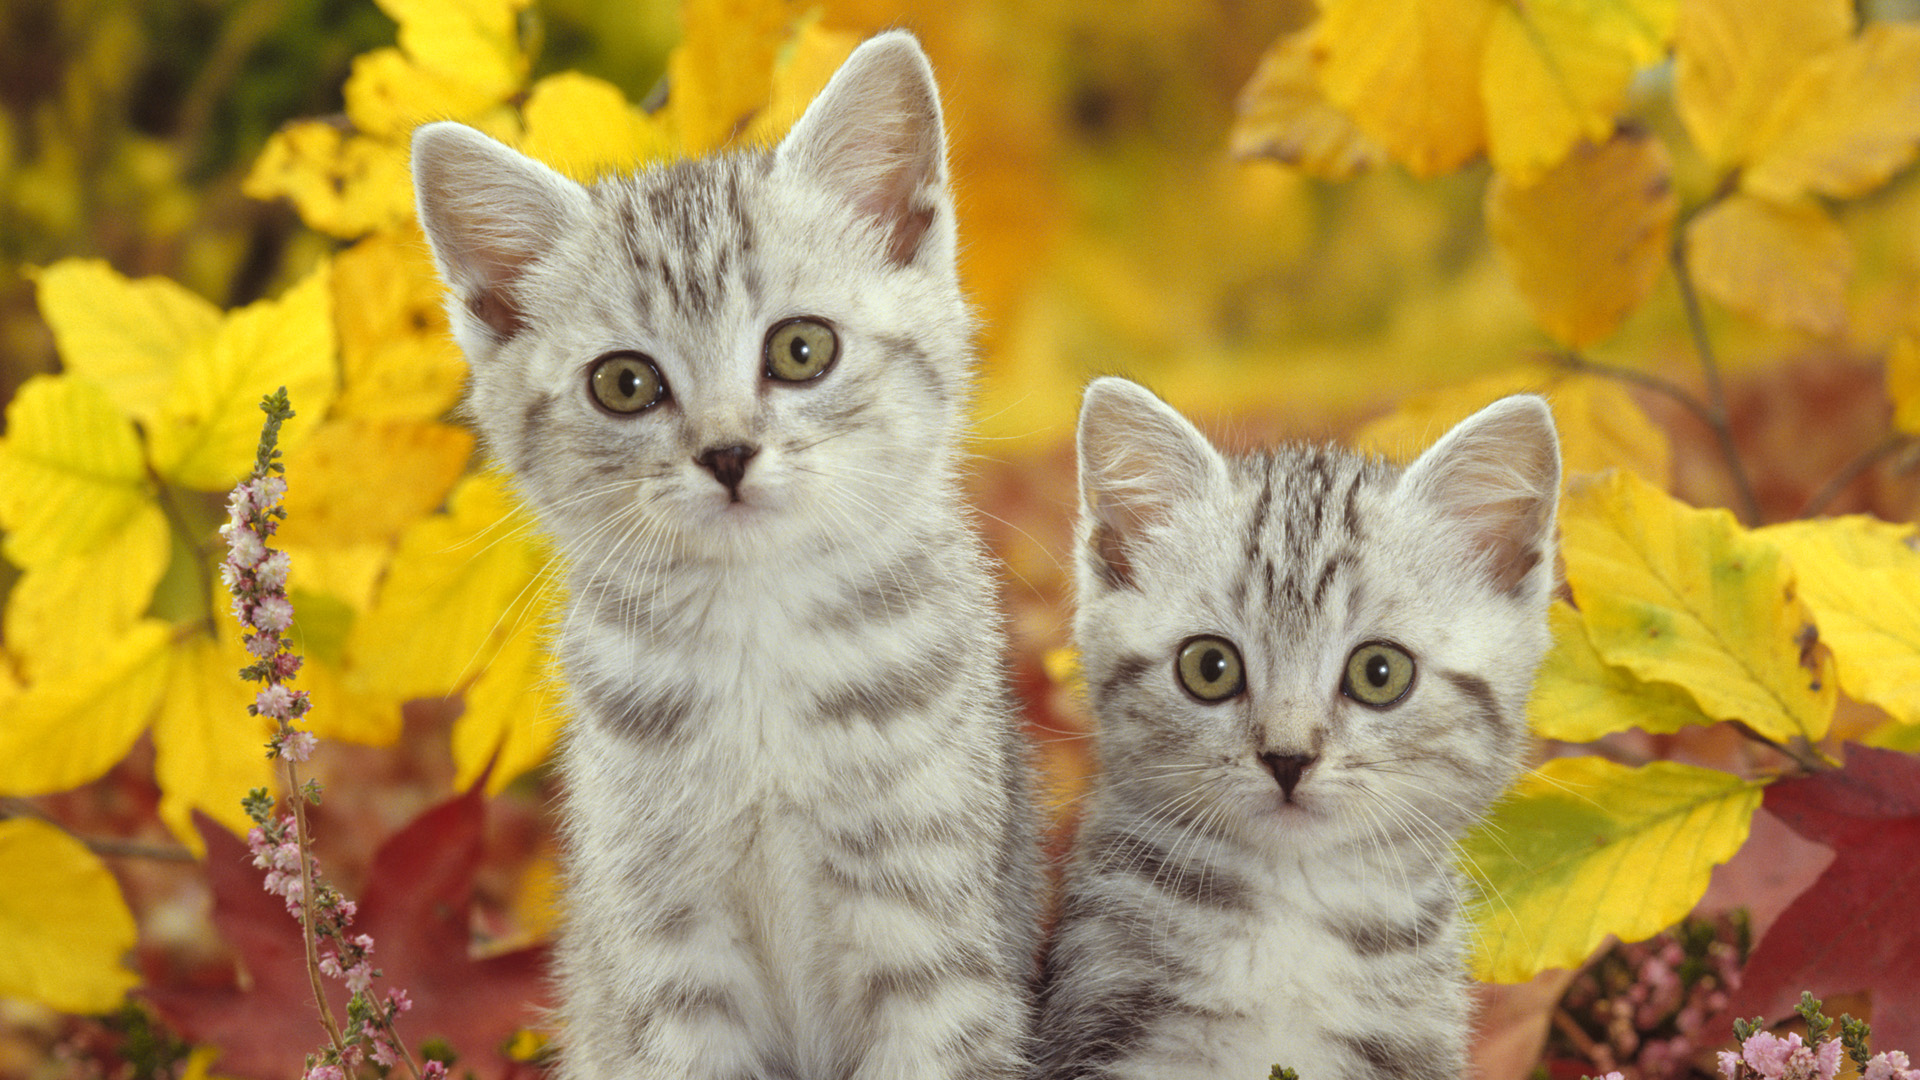 Cute Puppy Wallpapers For Iphone 50 Free Hd Cat Wallpapers